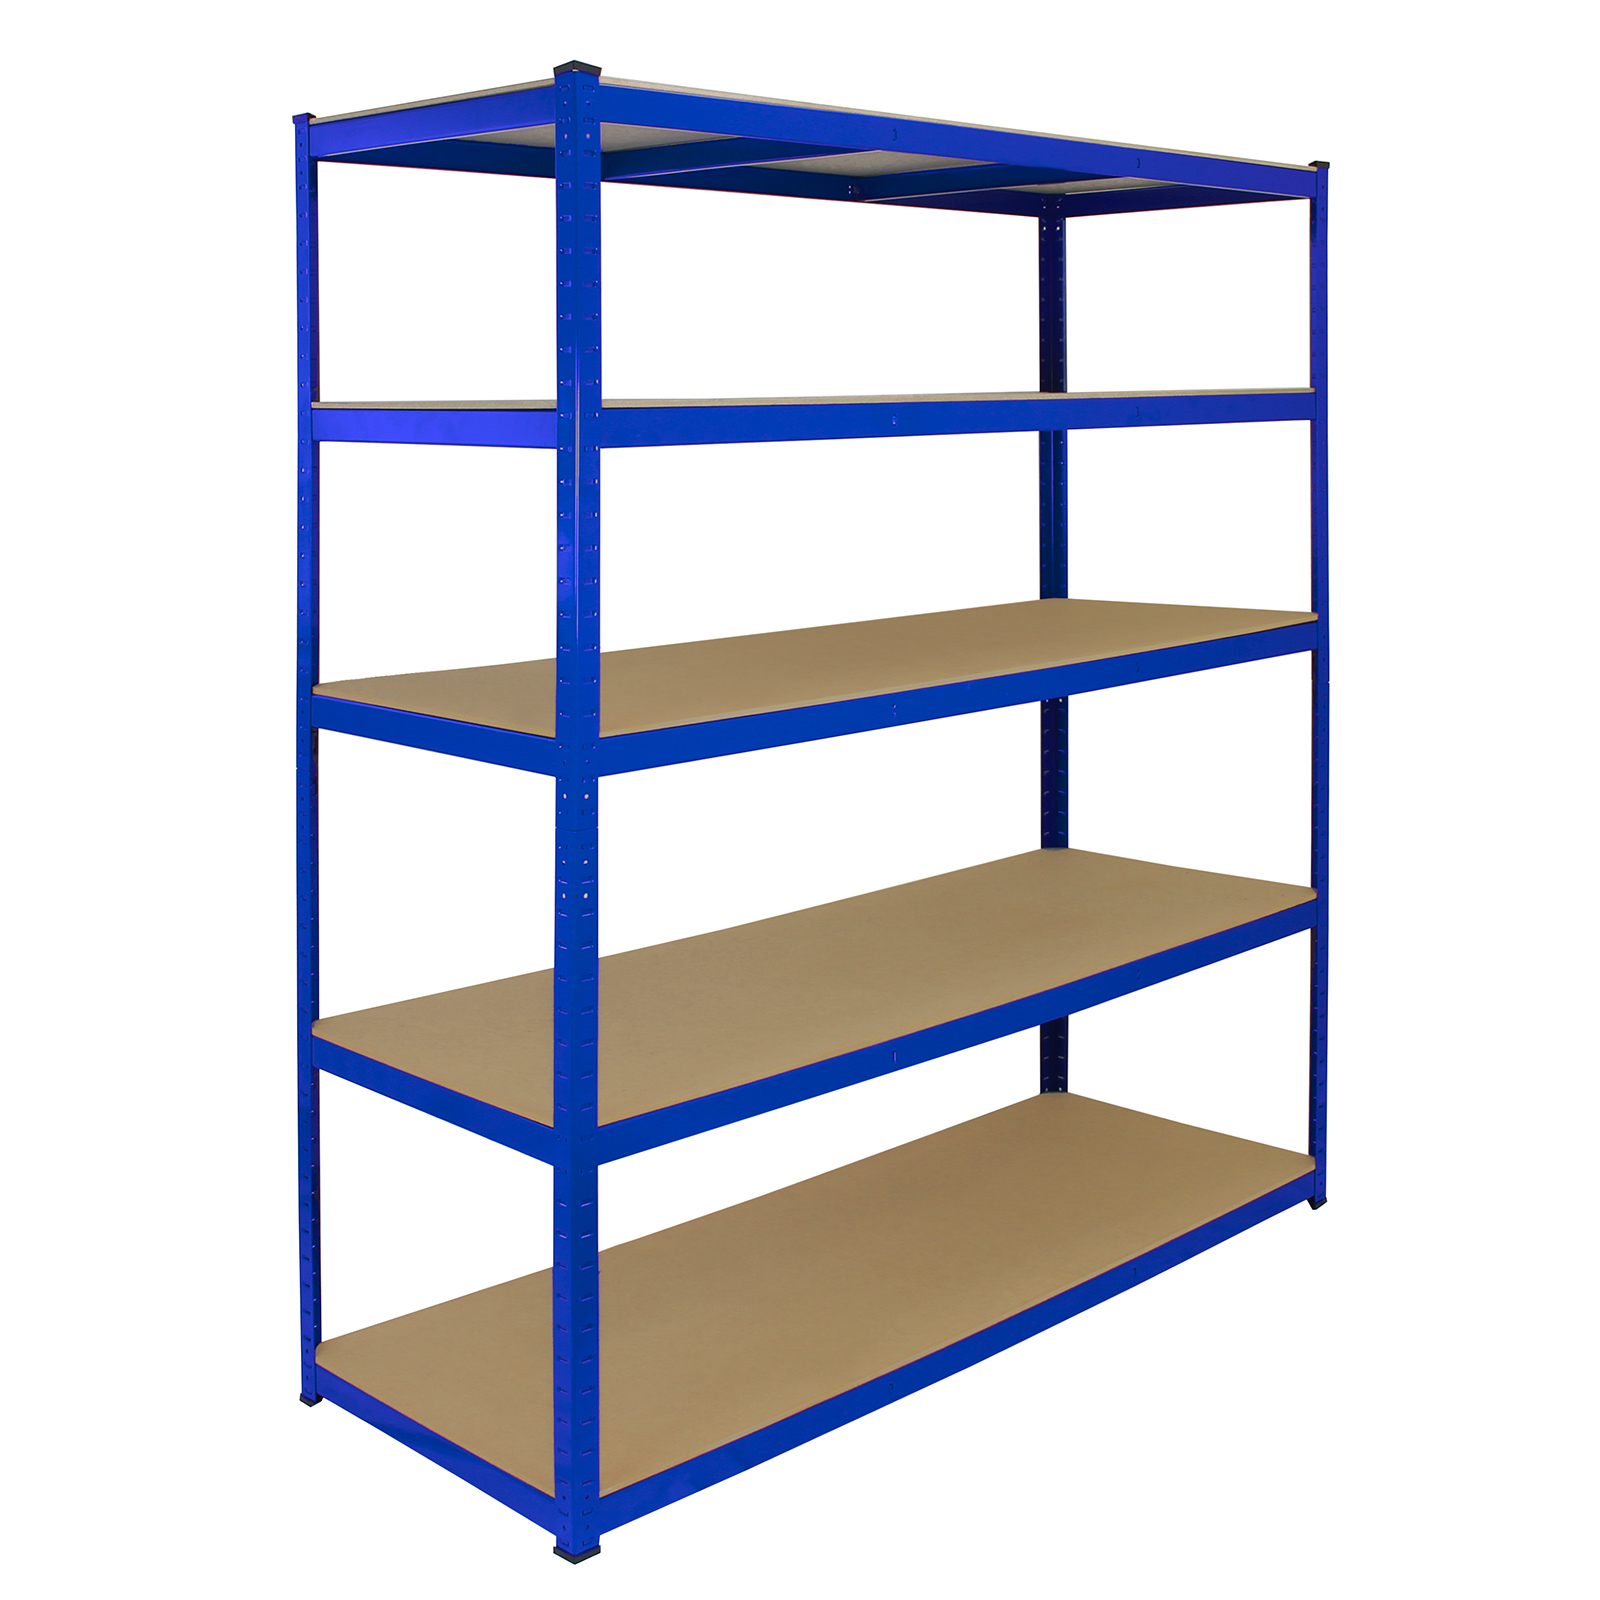 1 Bay Garage Storage Shed Shelving Metal Unit 5tier 160cm